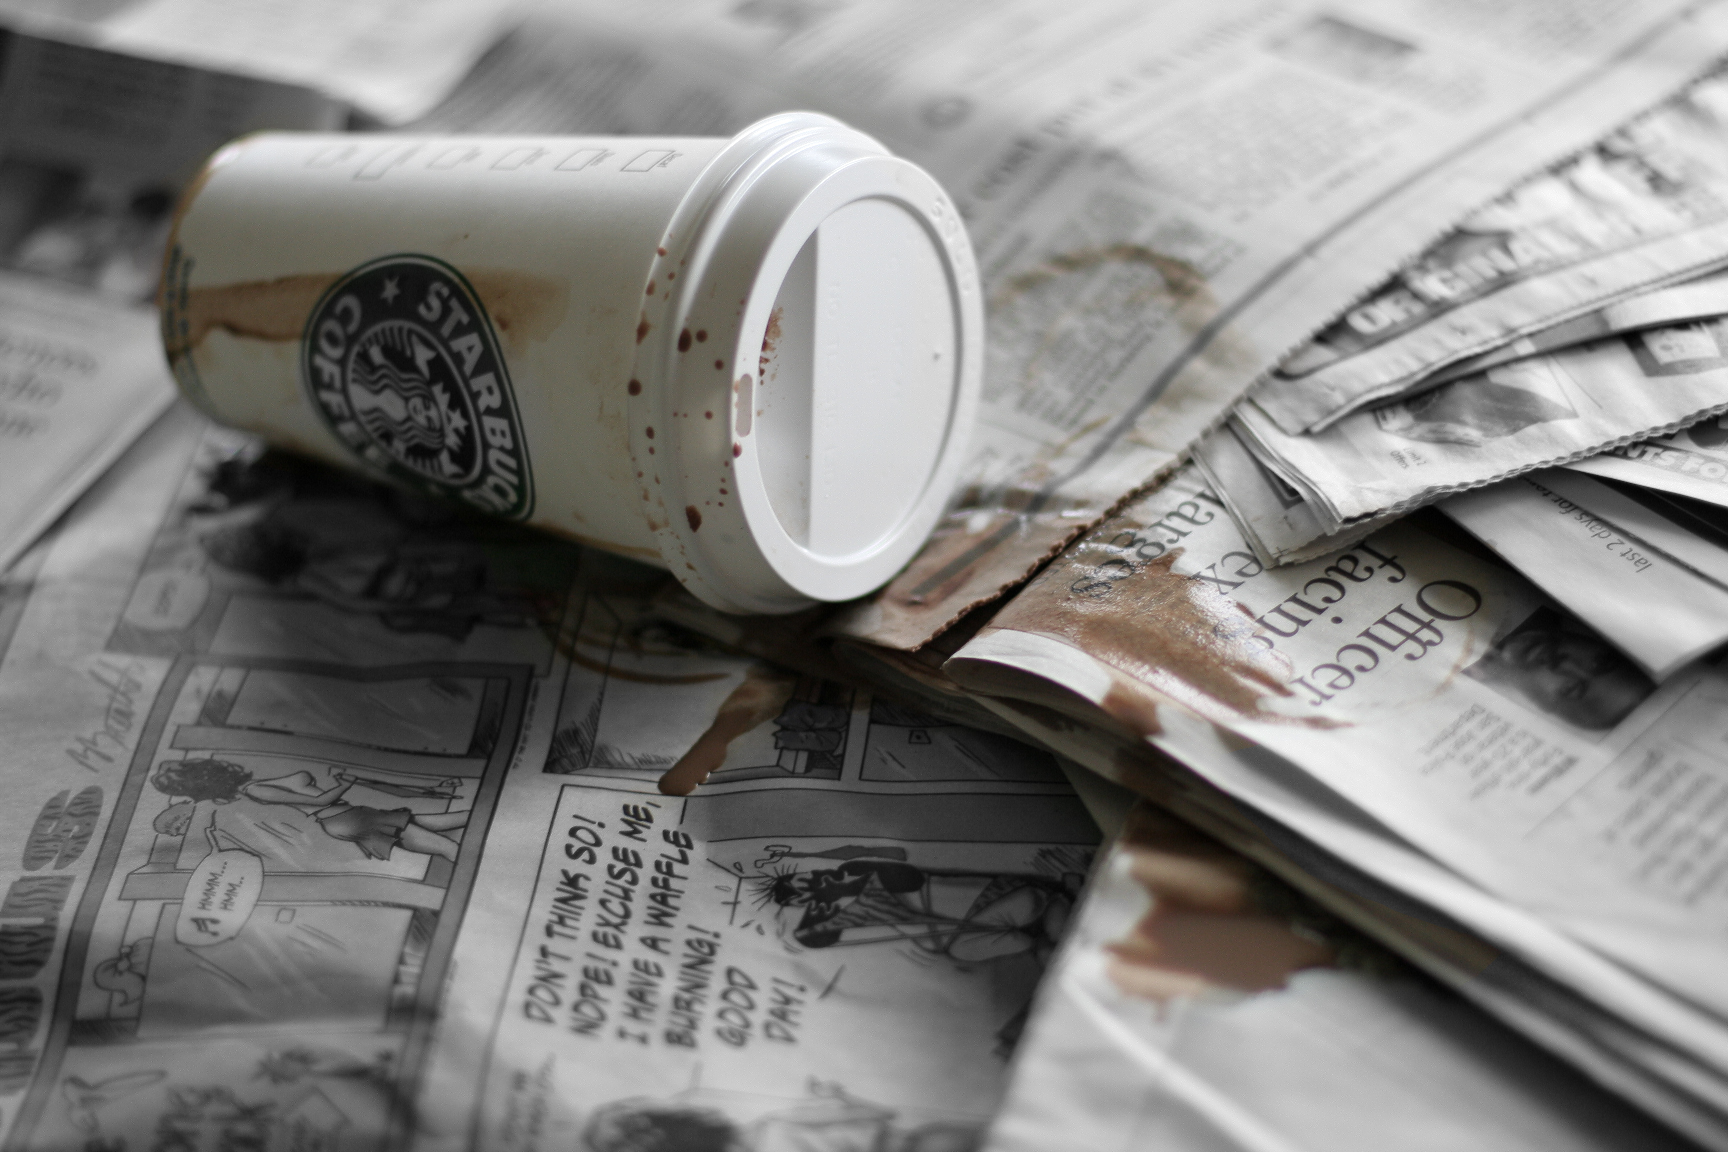 Coffee Spill Diverts United Airlines Flight - Pilot Spilled